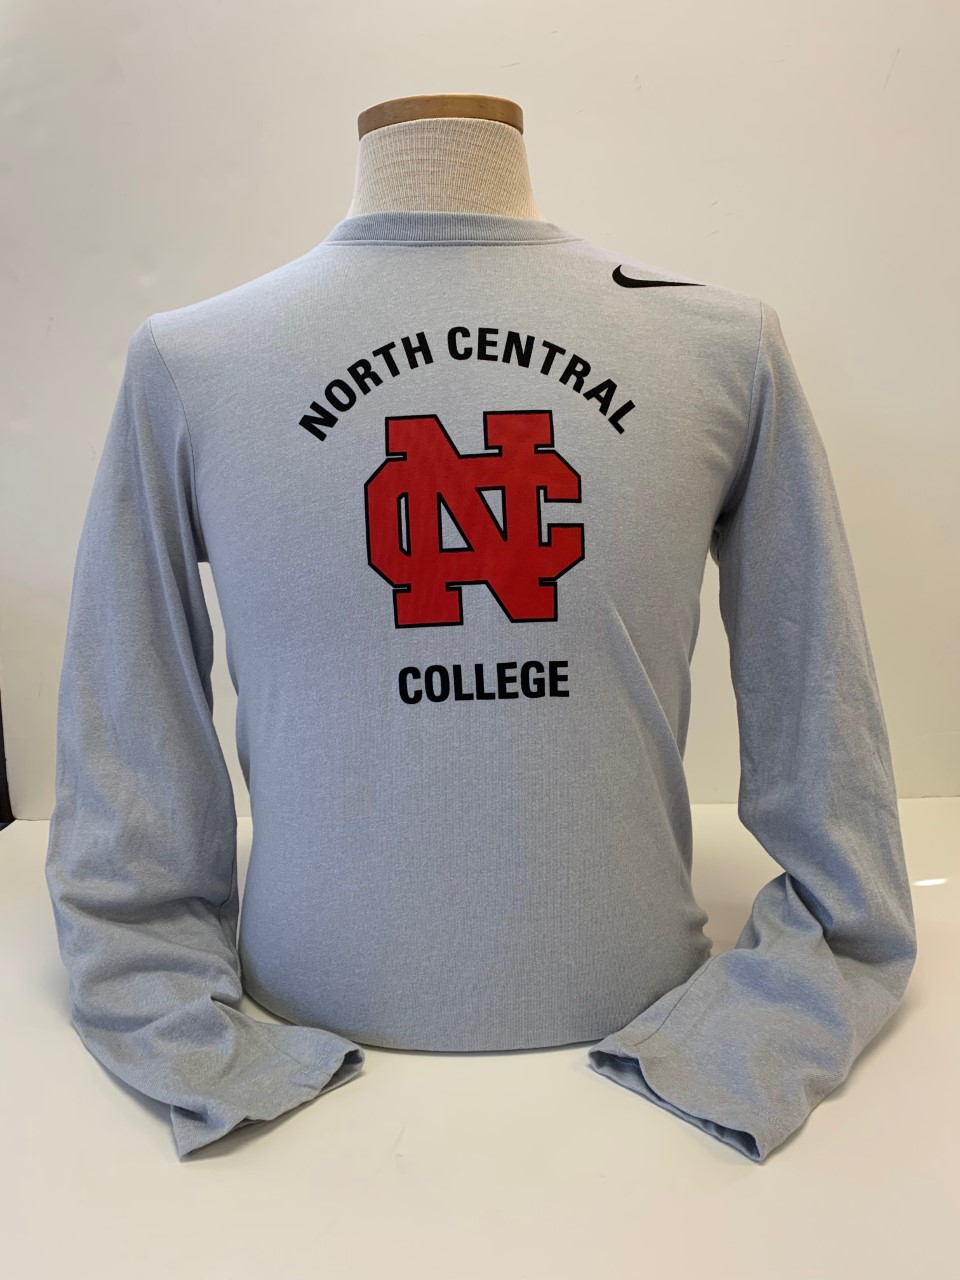 Image for the Nike Marled Long Sleeve Tee 2018 Design product